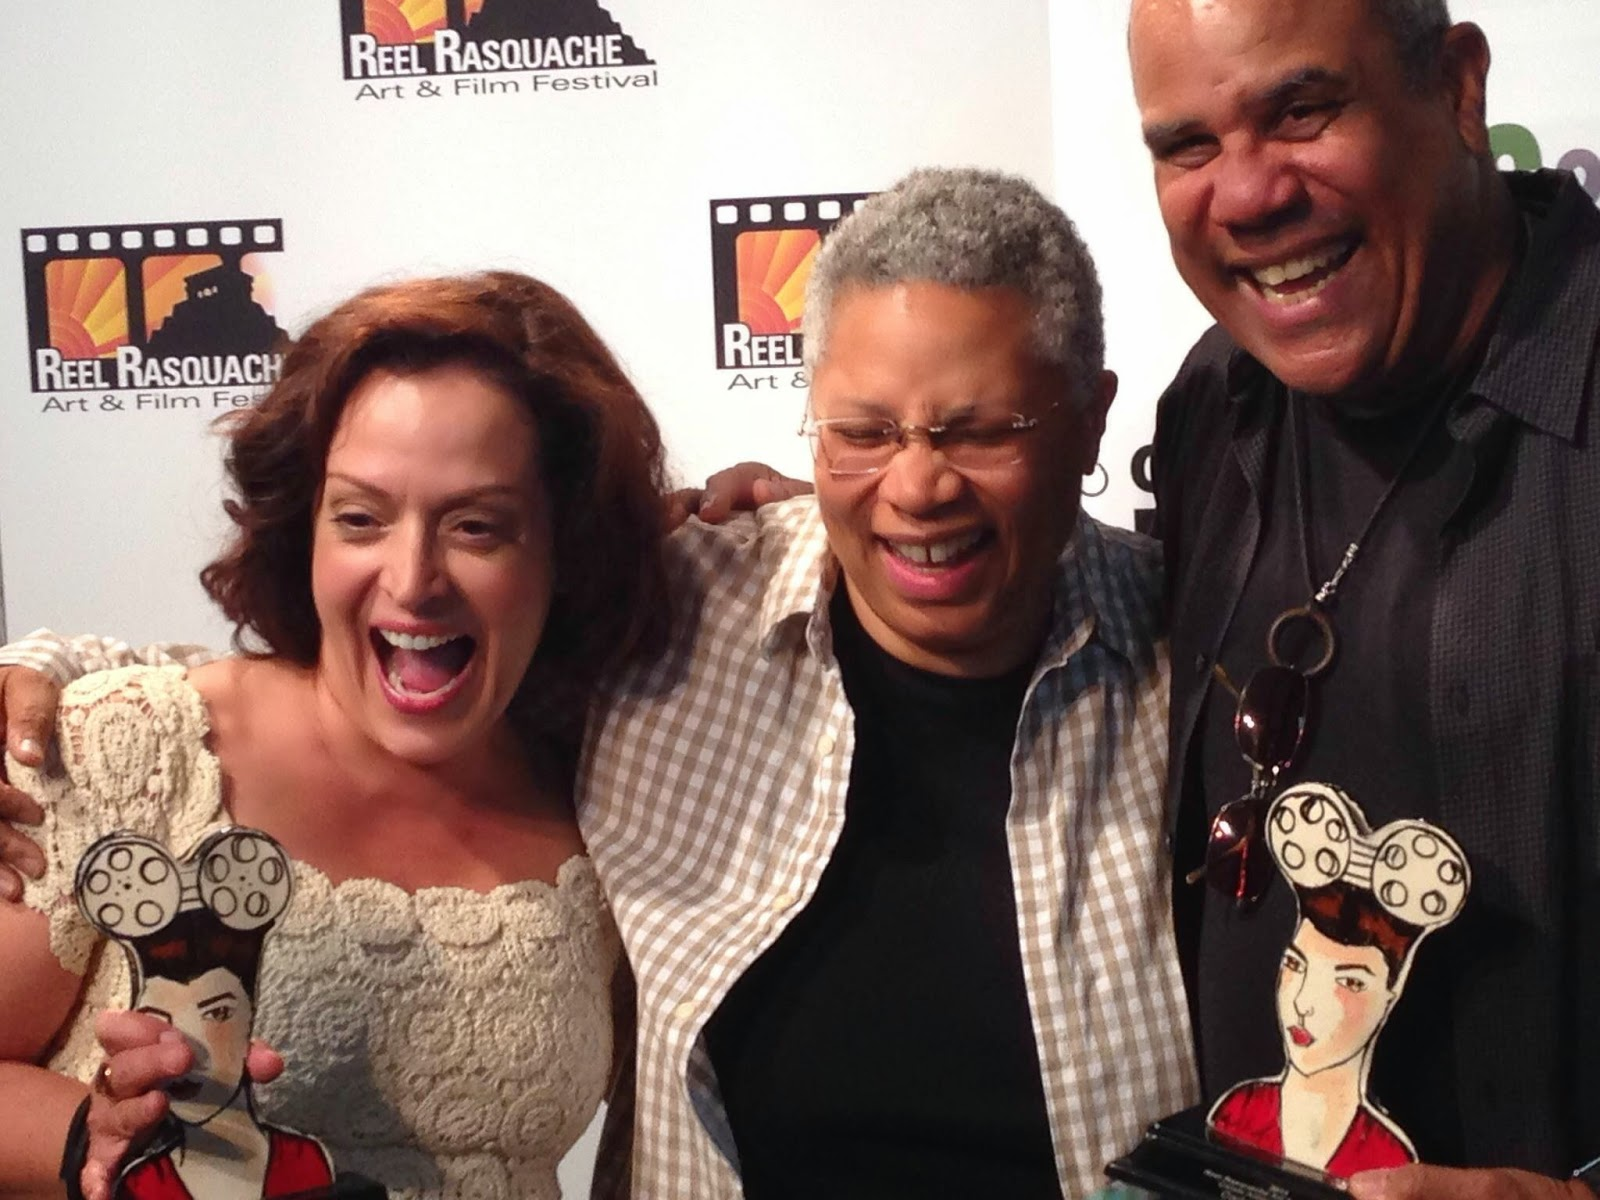 Hola directory of talent claudia morales - Carlos Carrasco And Marlene Fort Shown At Left And At Right Flanking Rraff Co Director Ngela Mar A Ortiz S In The Photo At Right Received Honors At